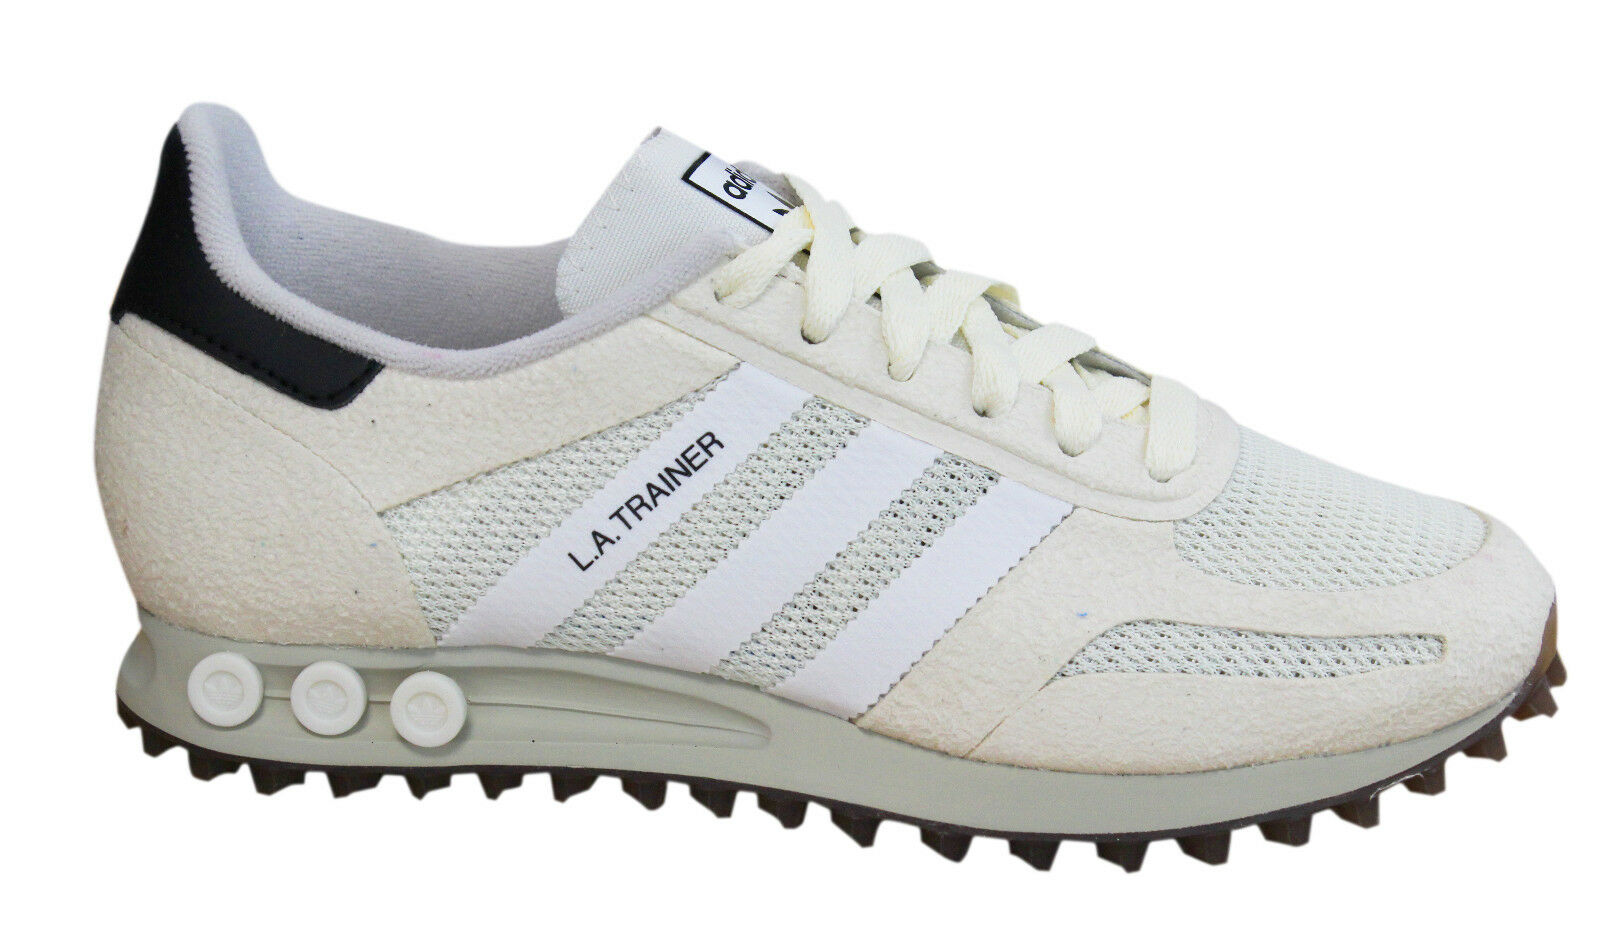 Adidas Originals LA Trainer OG   Herren Trainers Trainers Trainers Olympic Games Cream BY9321 M18 381531